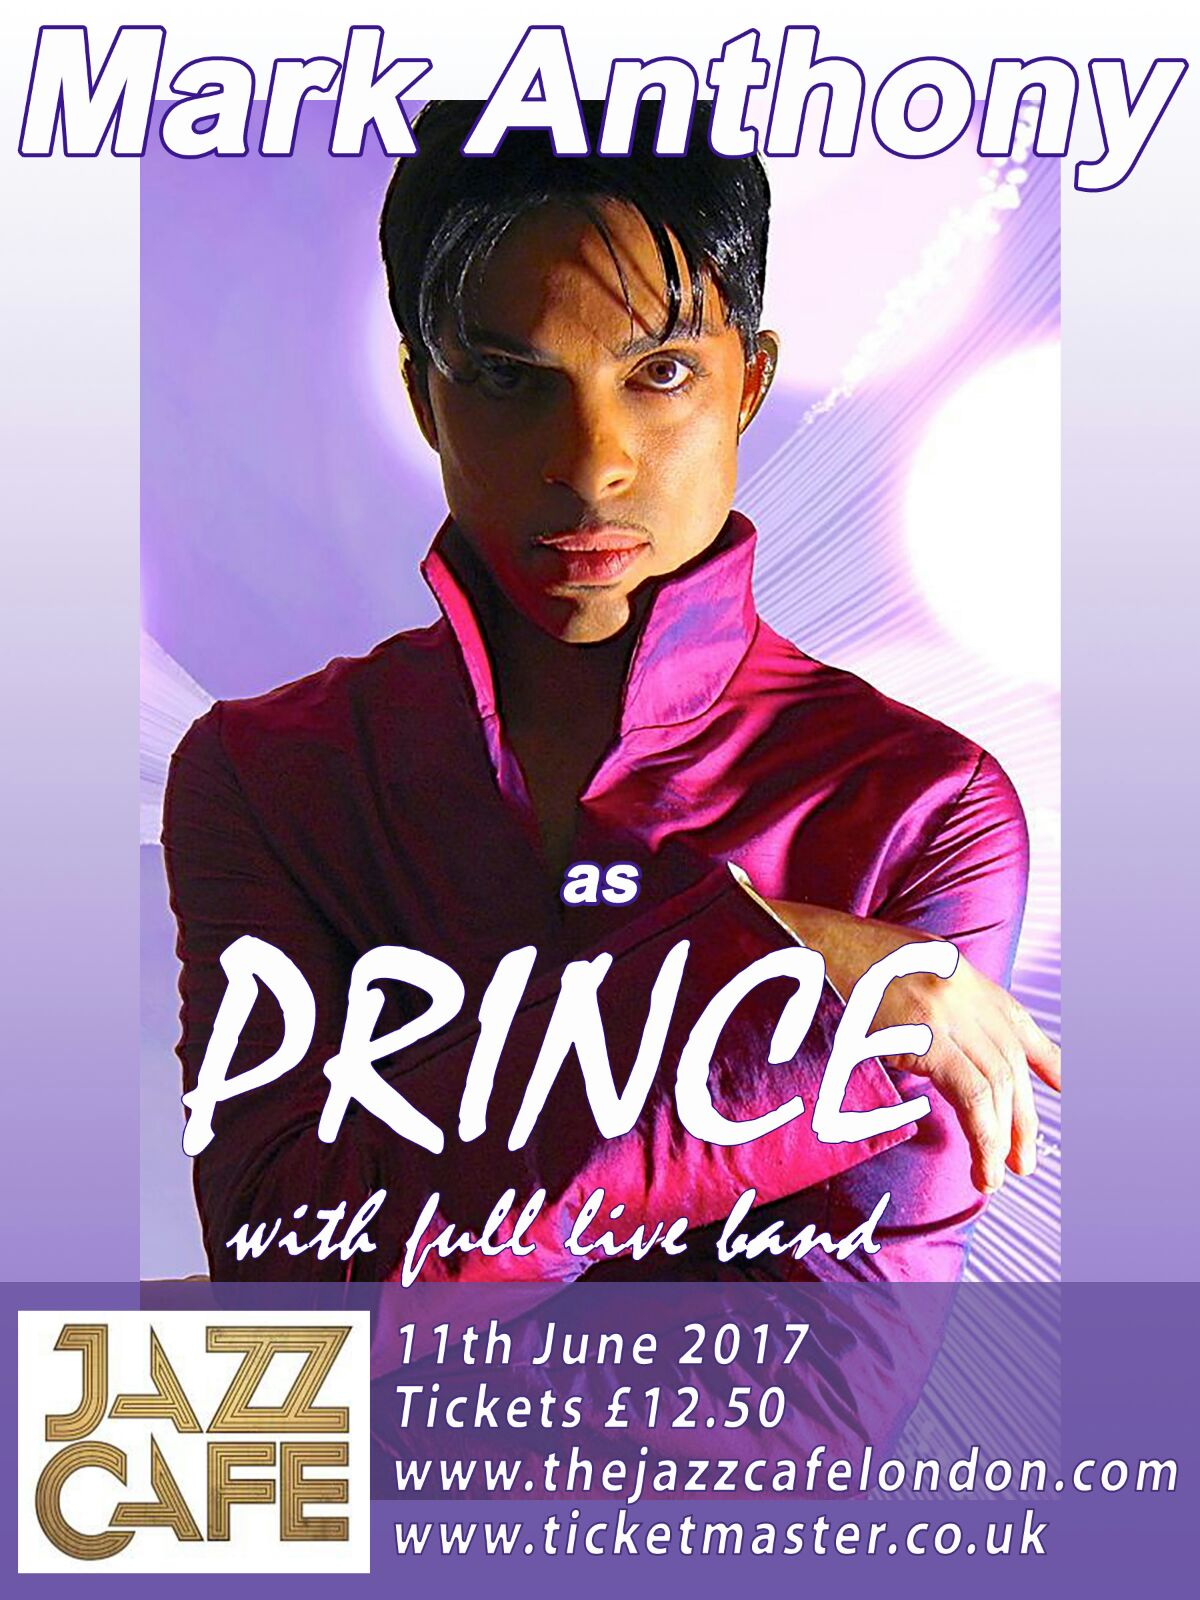 Jazz Cafe Sunday 11th June 2017